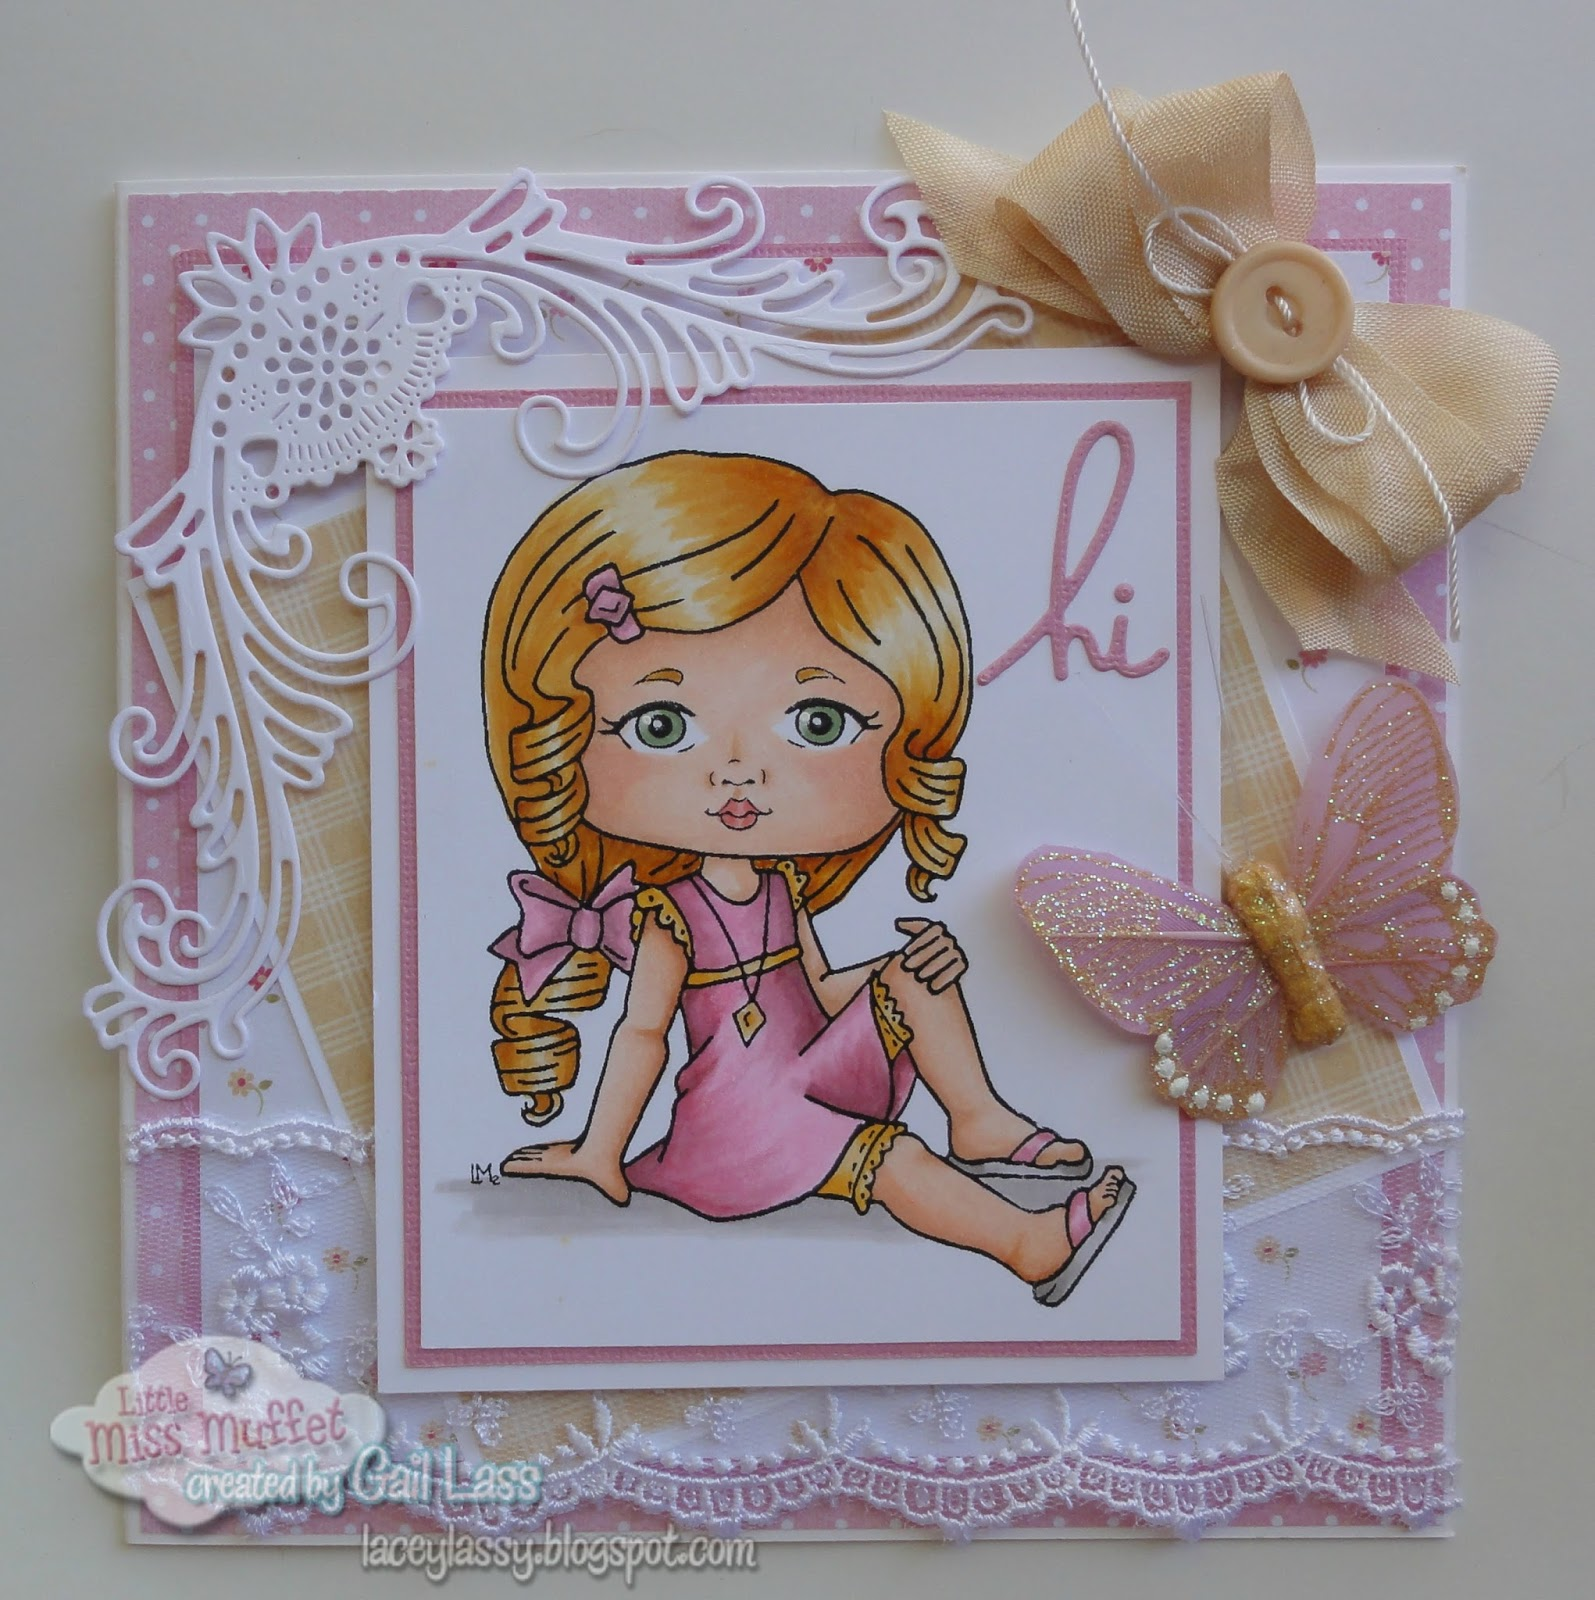 Lacey lassy pretty in pink i colored my image with copics and pulled out my super pretty lace pretty die cut and seam binding kristyandbryce Gallery